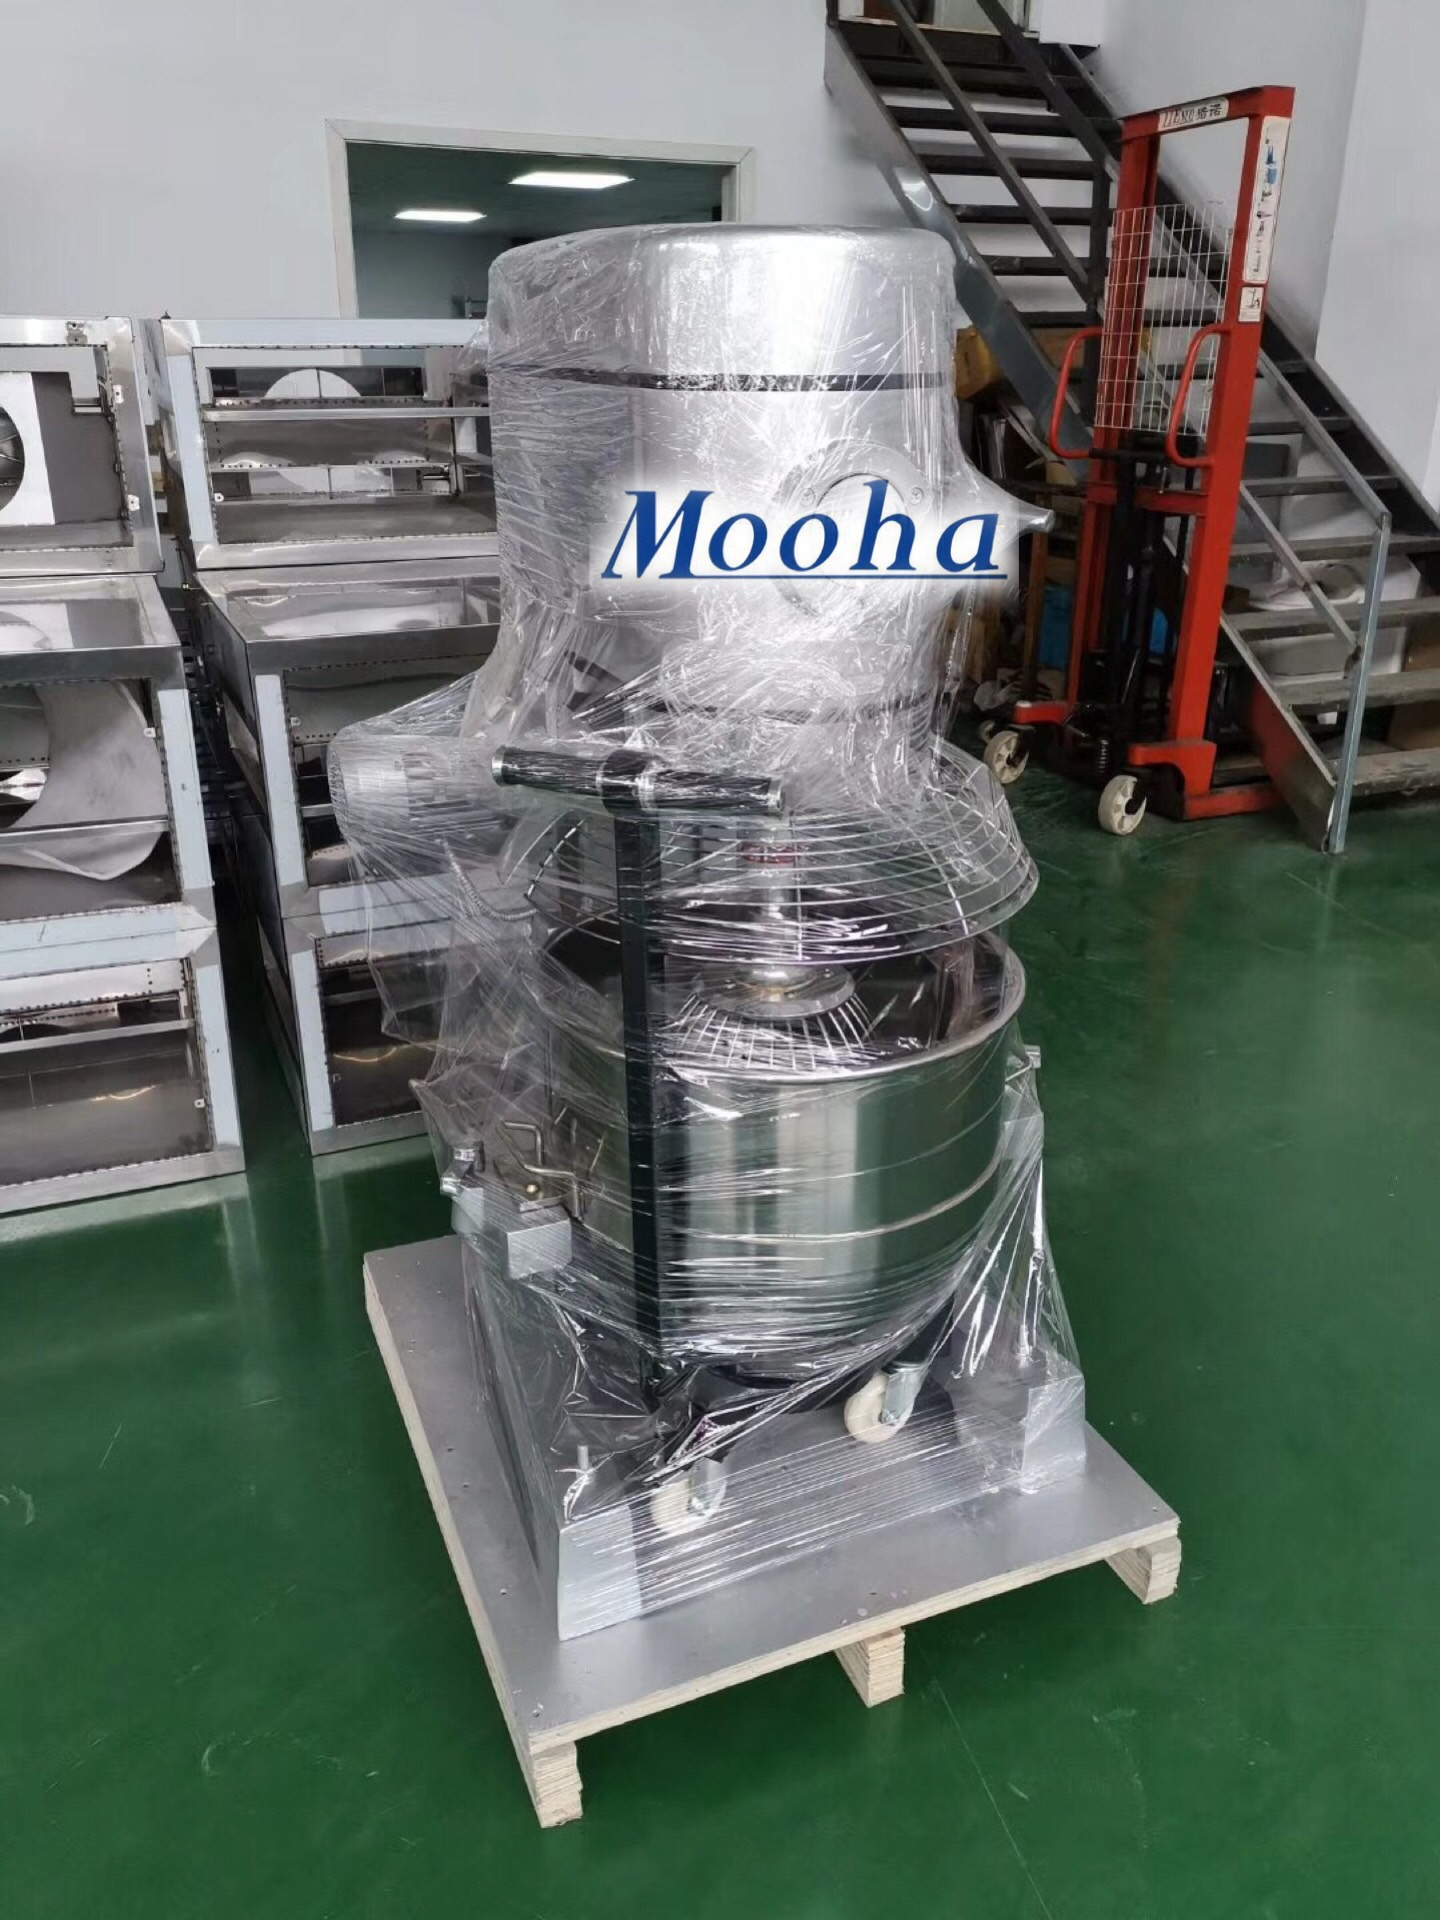 Commercial 30 Liters Planetary Mixer 3-6 KG powder Kneading Cake Biscuits Cookies Cream Egg Butter Mixing Bakery Machine